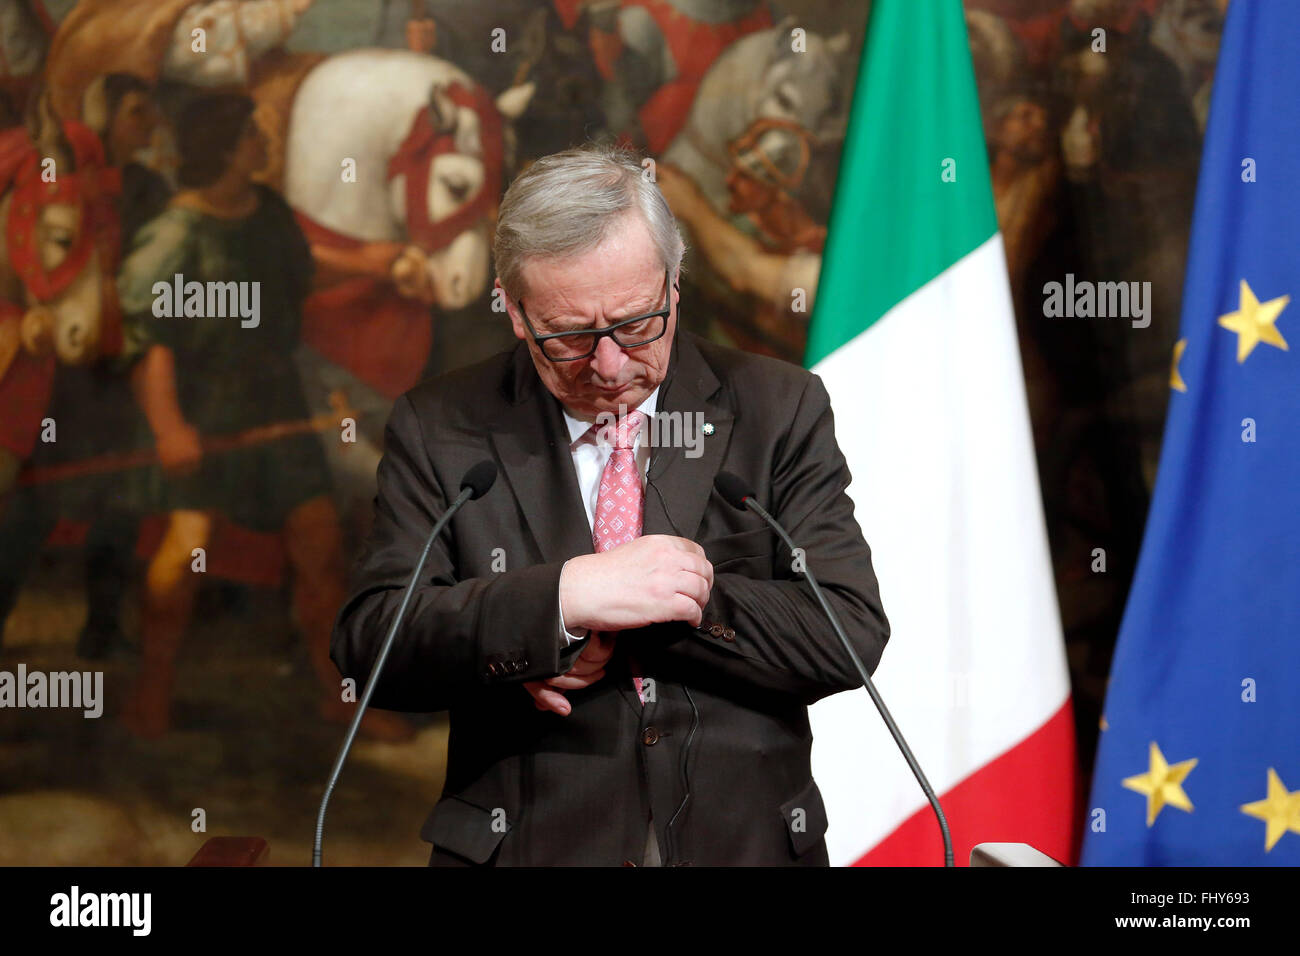 Jean-Claude Junker Rome 26th February 2016. Italian Premier meets the President of the EU Commission. Photo Samantha - Stock Image